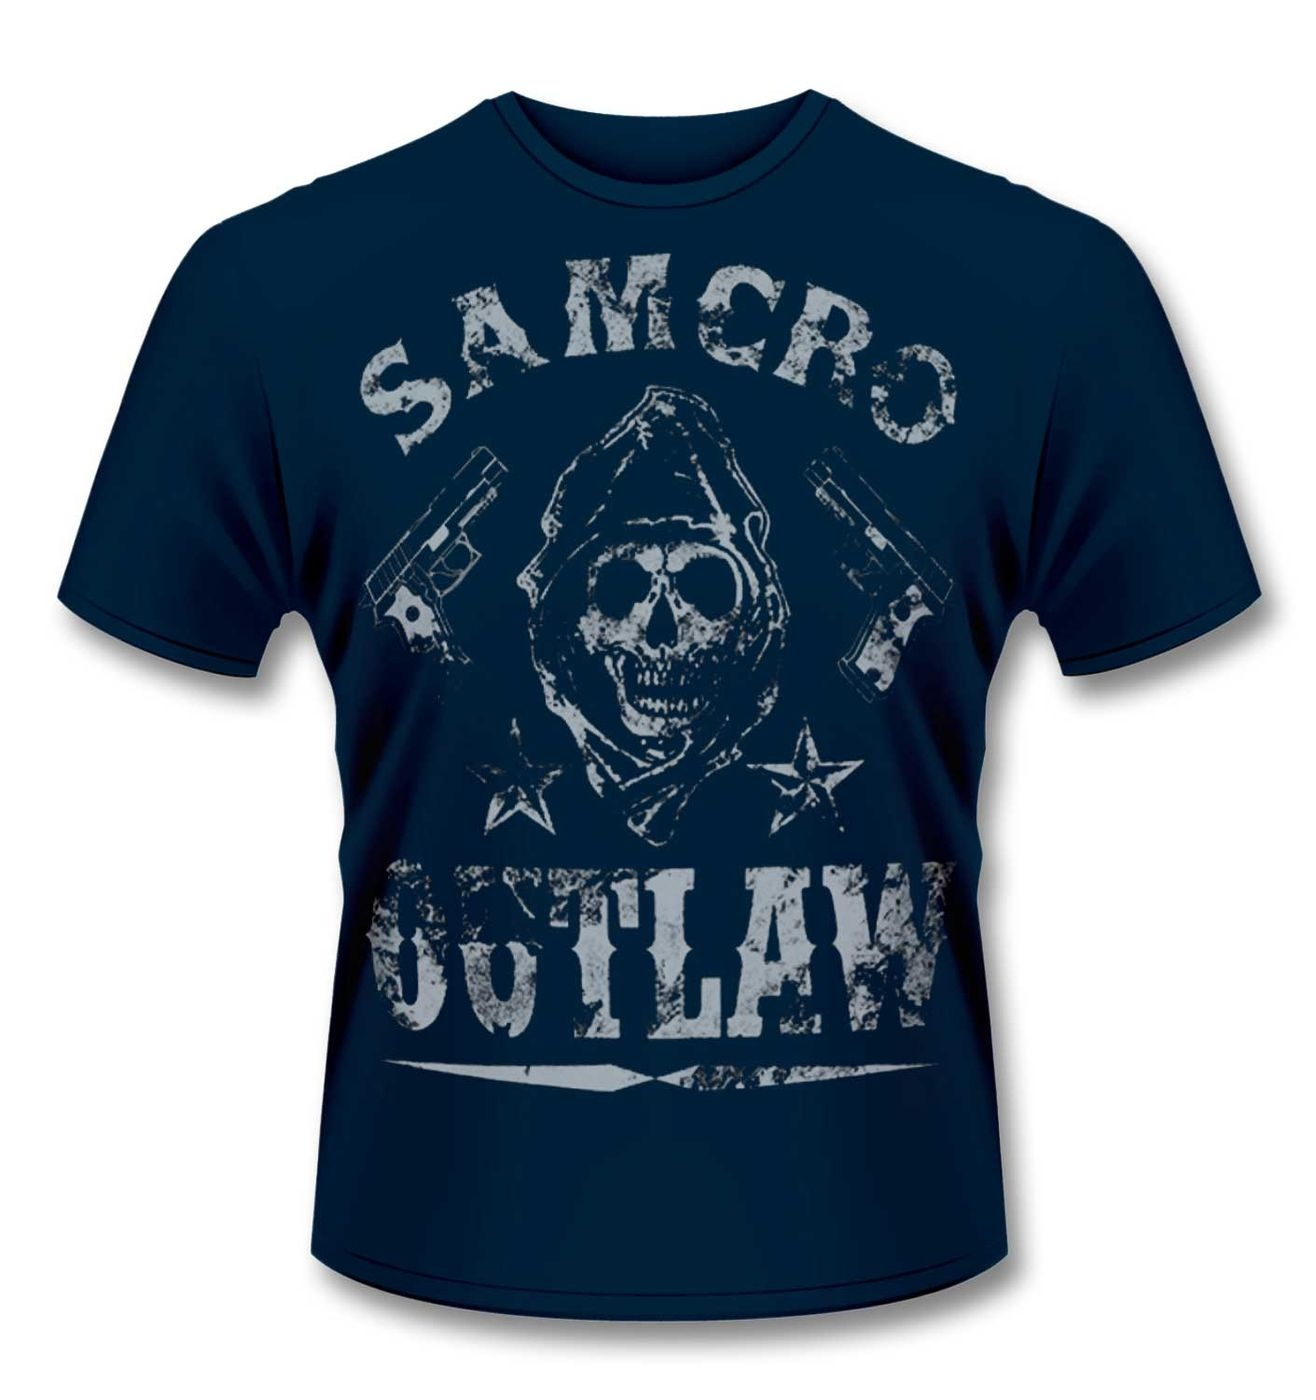 official sons of anarchy outlaw t shirt somethinggeeky. Black Bedroom Furniture Sets. Home Design Ideas